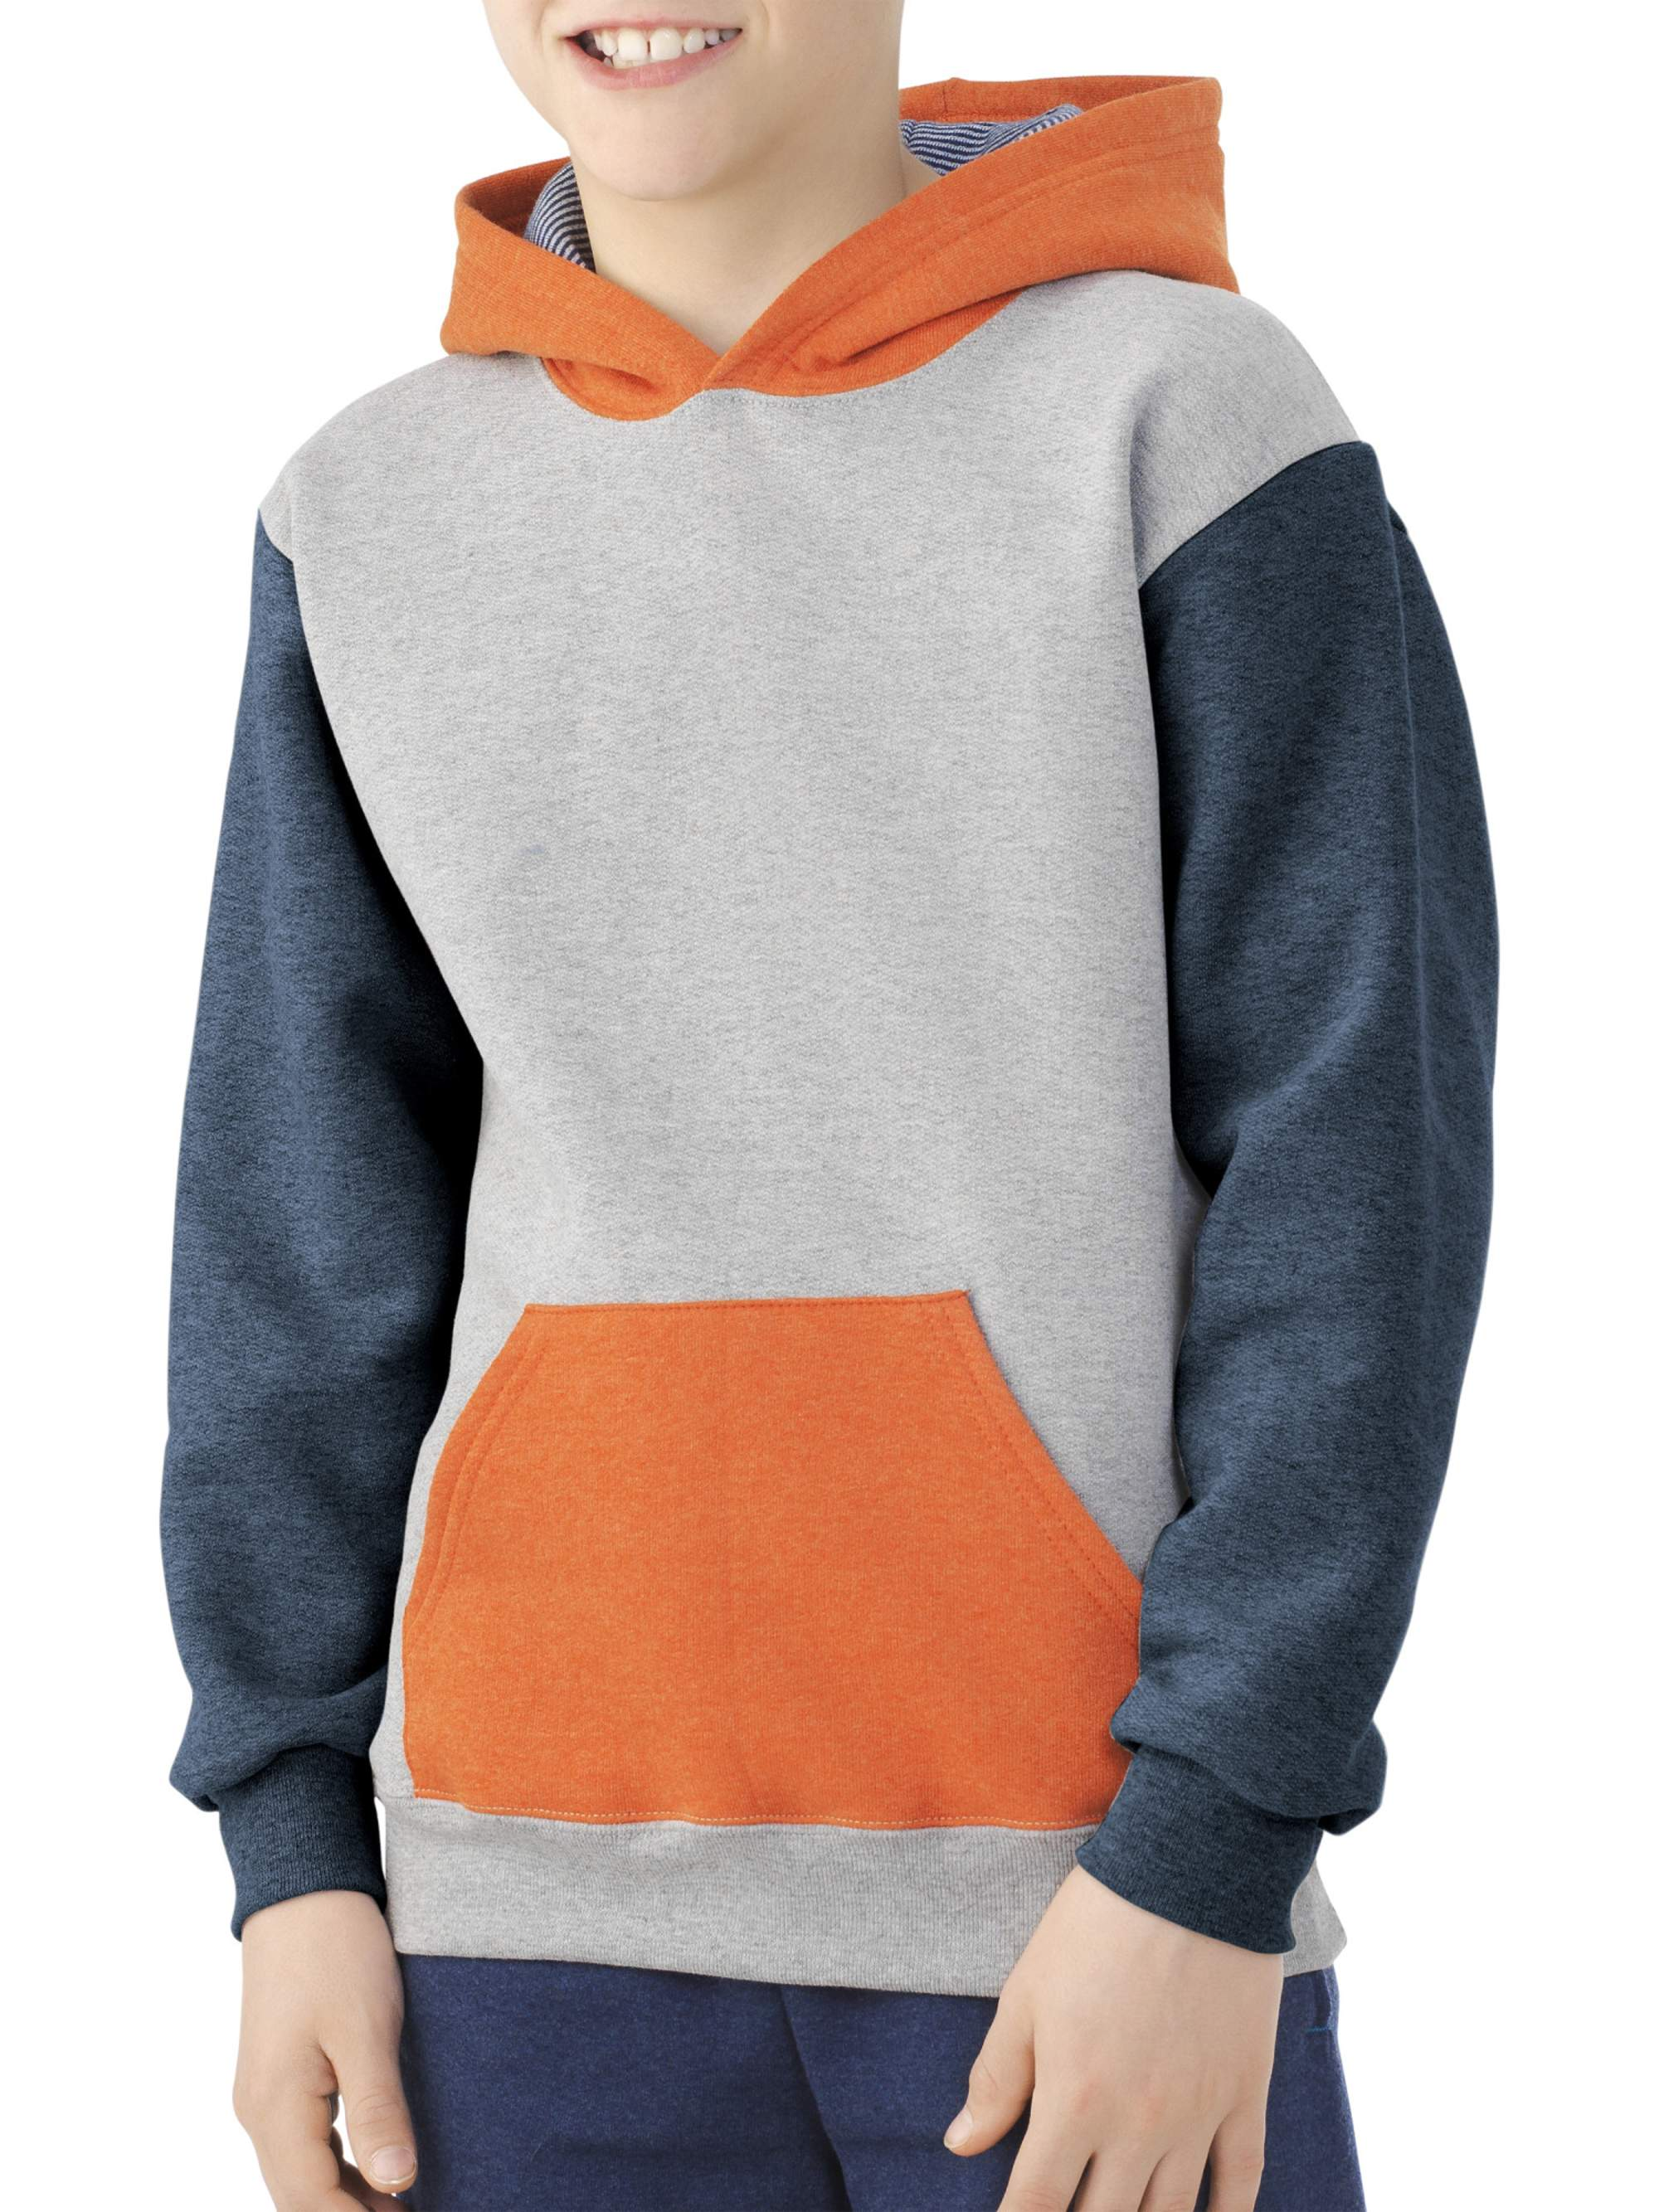 Boys' Explorer Fleece Super Soft Pullover Hoodie with Contrast Sleeves